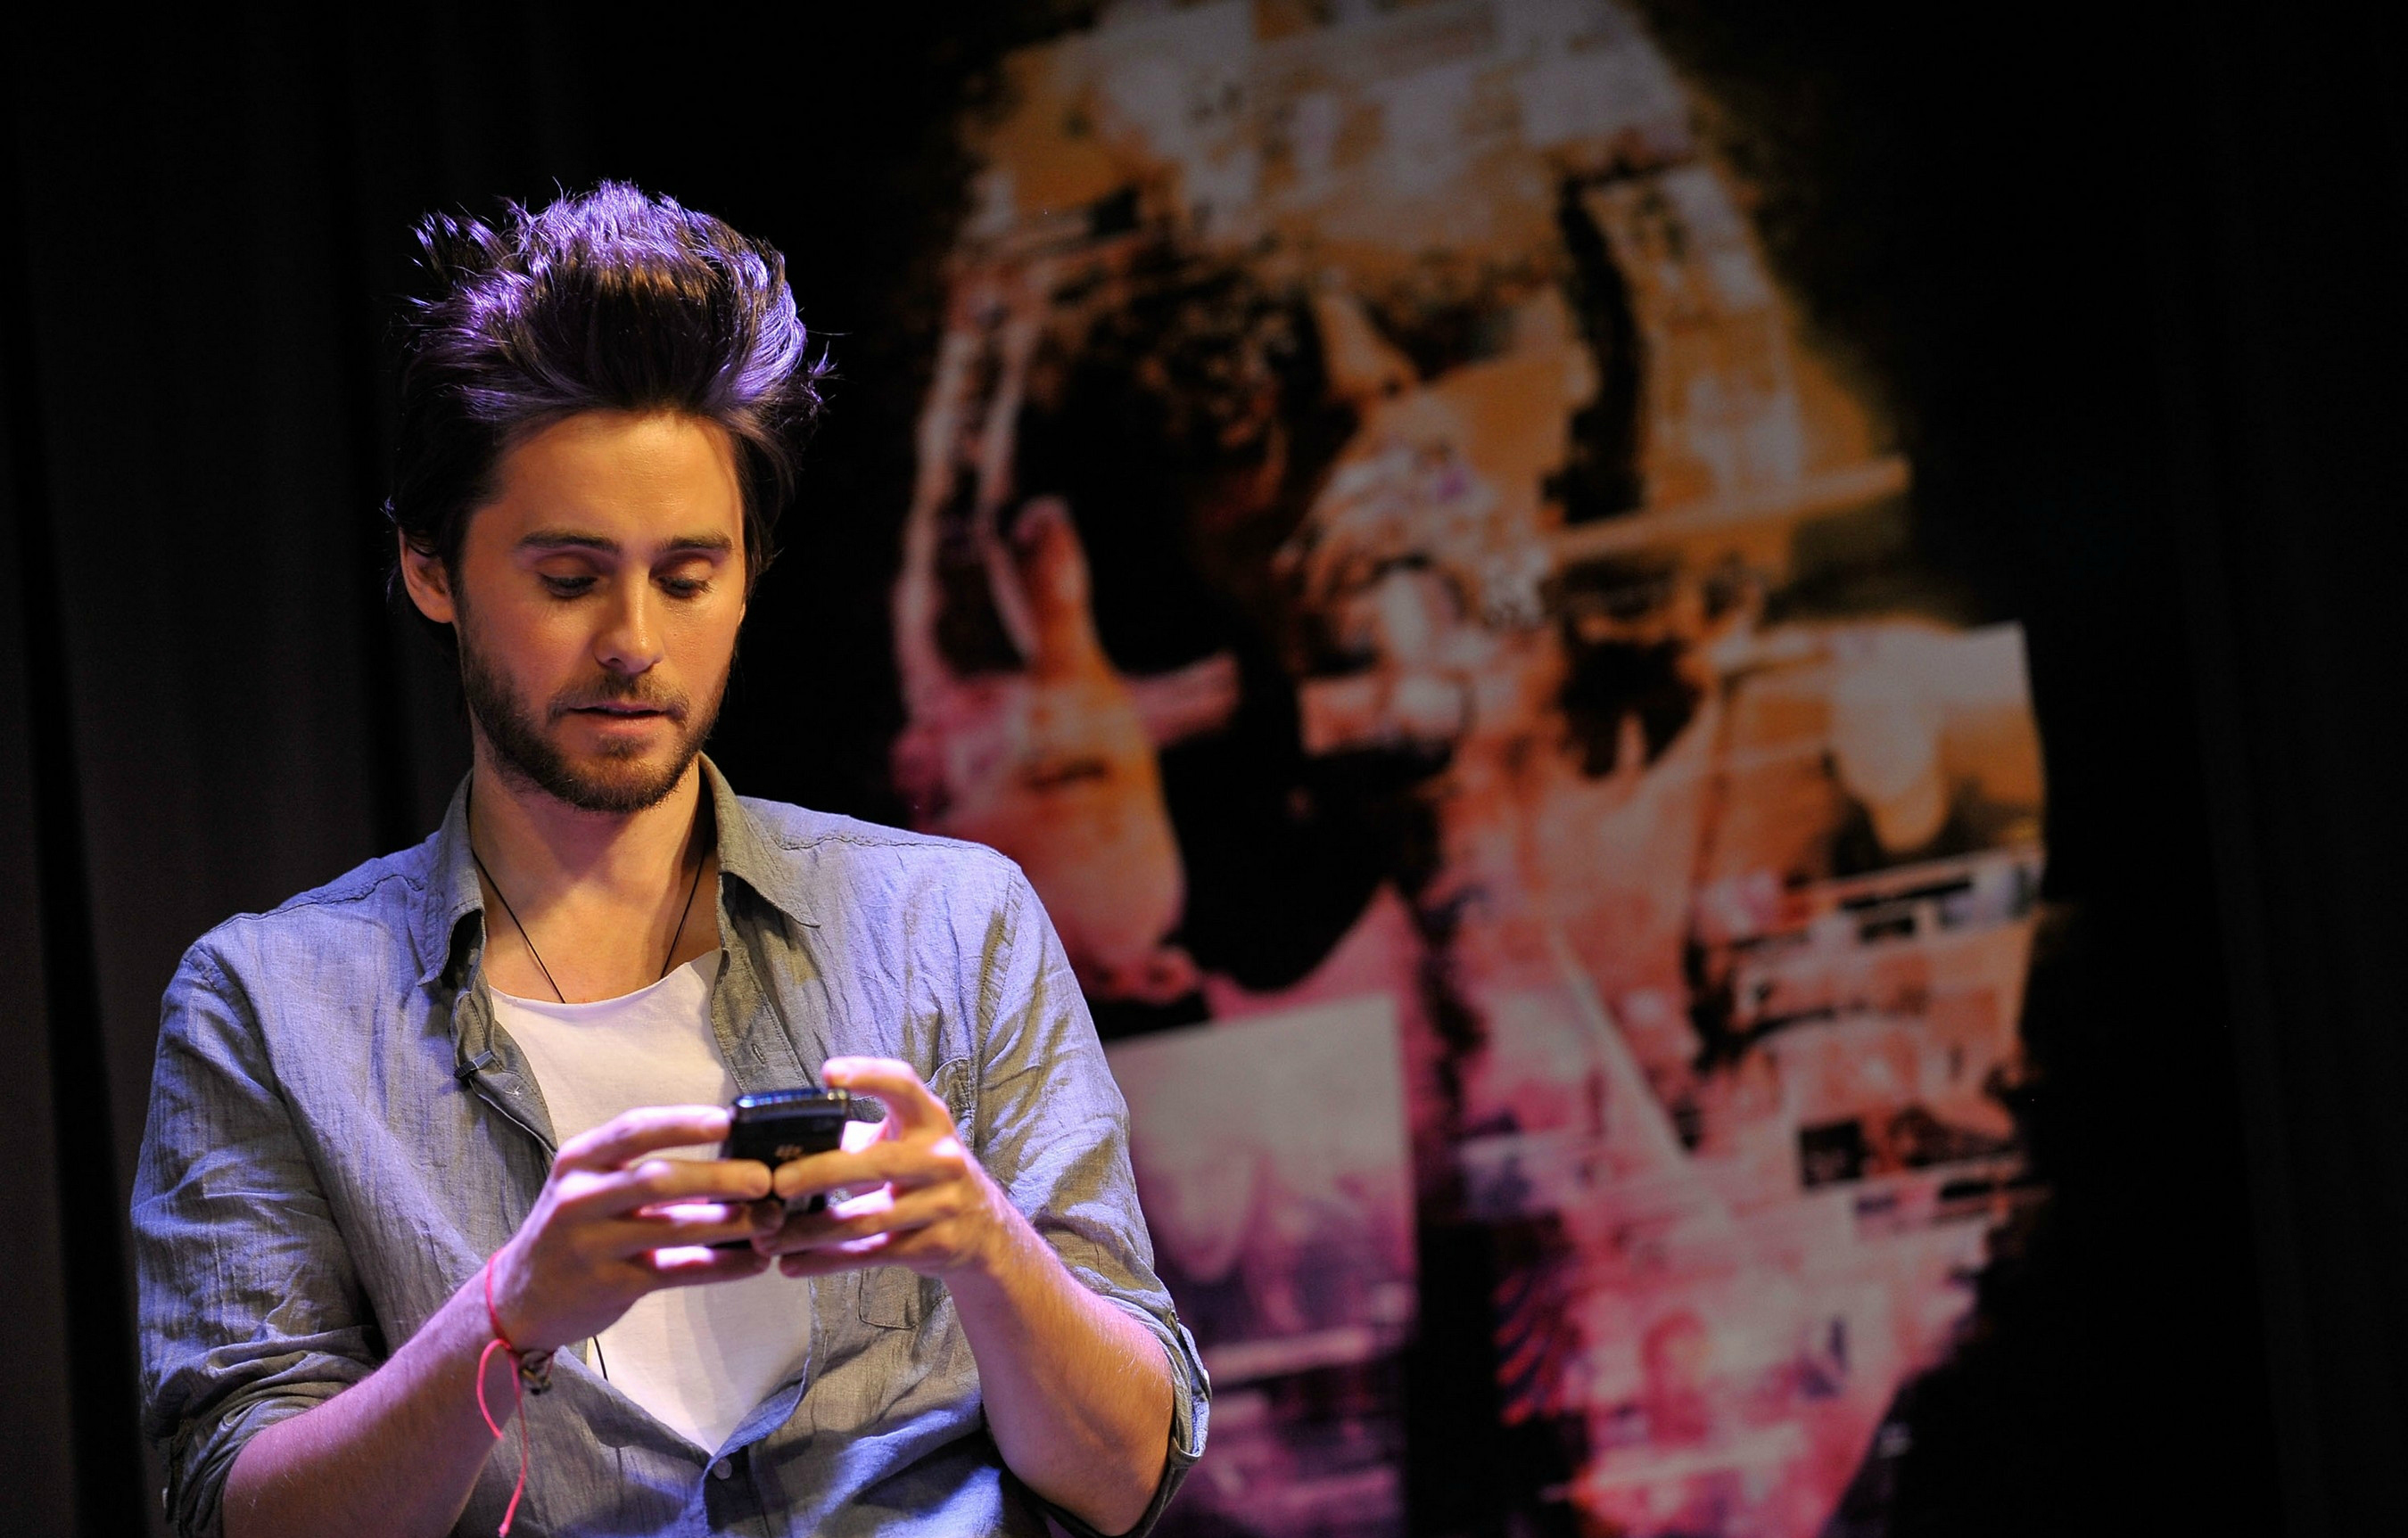 Jared leto images jared leto hd wallpaper and background photos - Celebrity Jared Leto Wallpaper